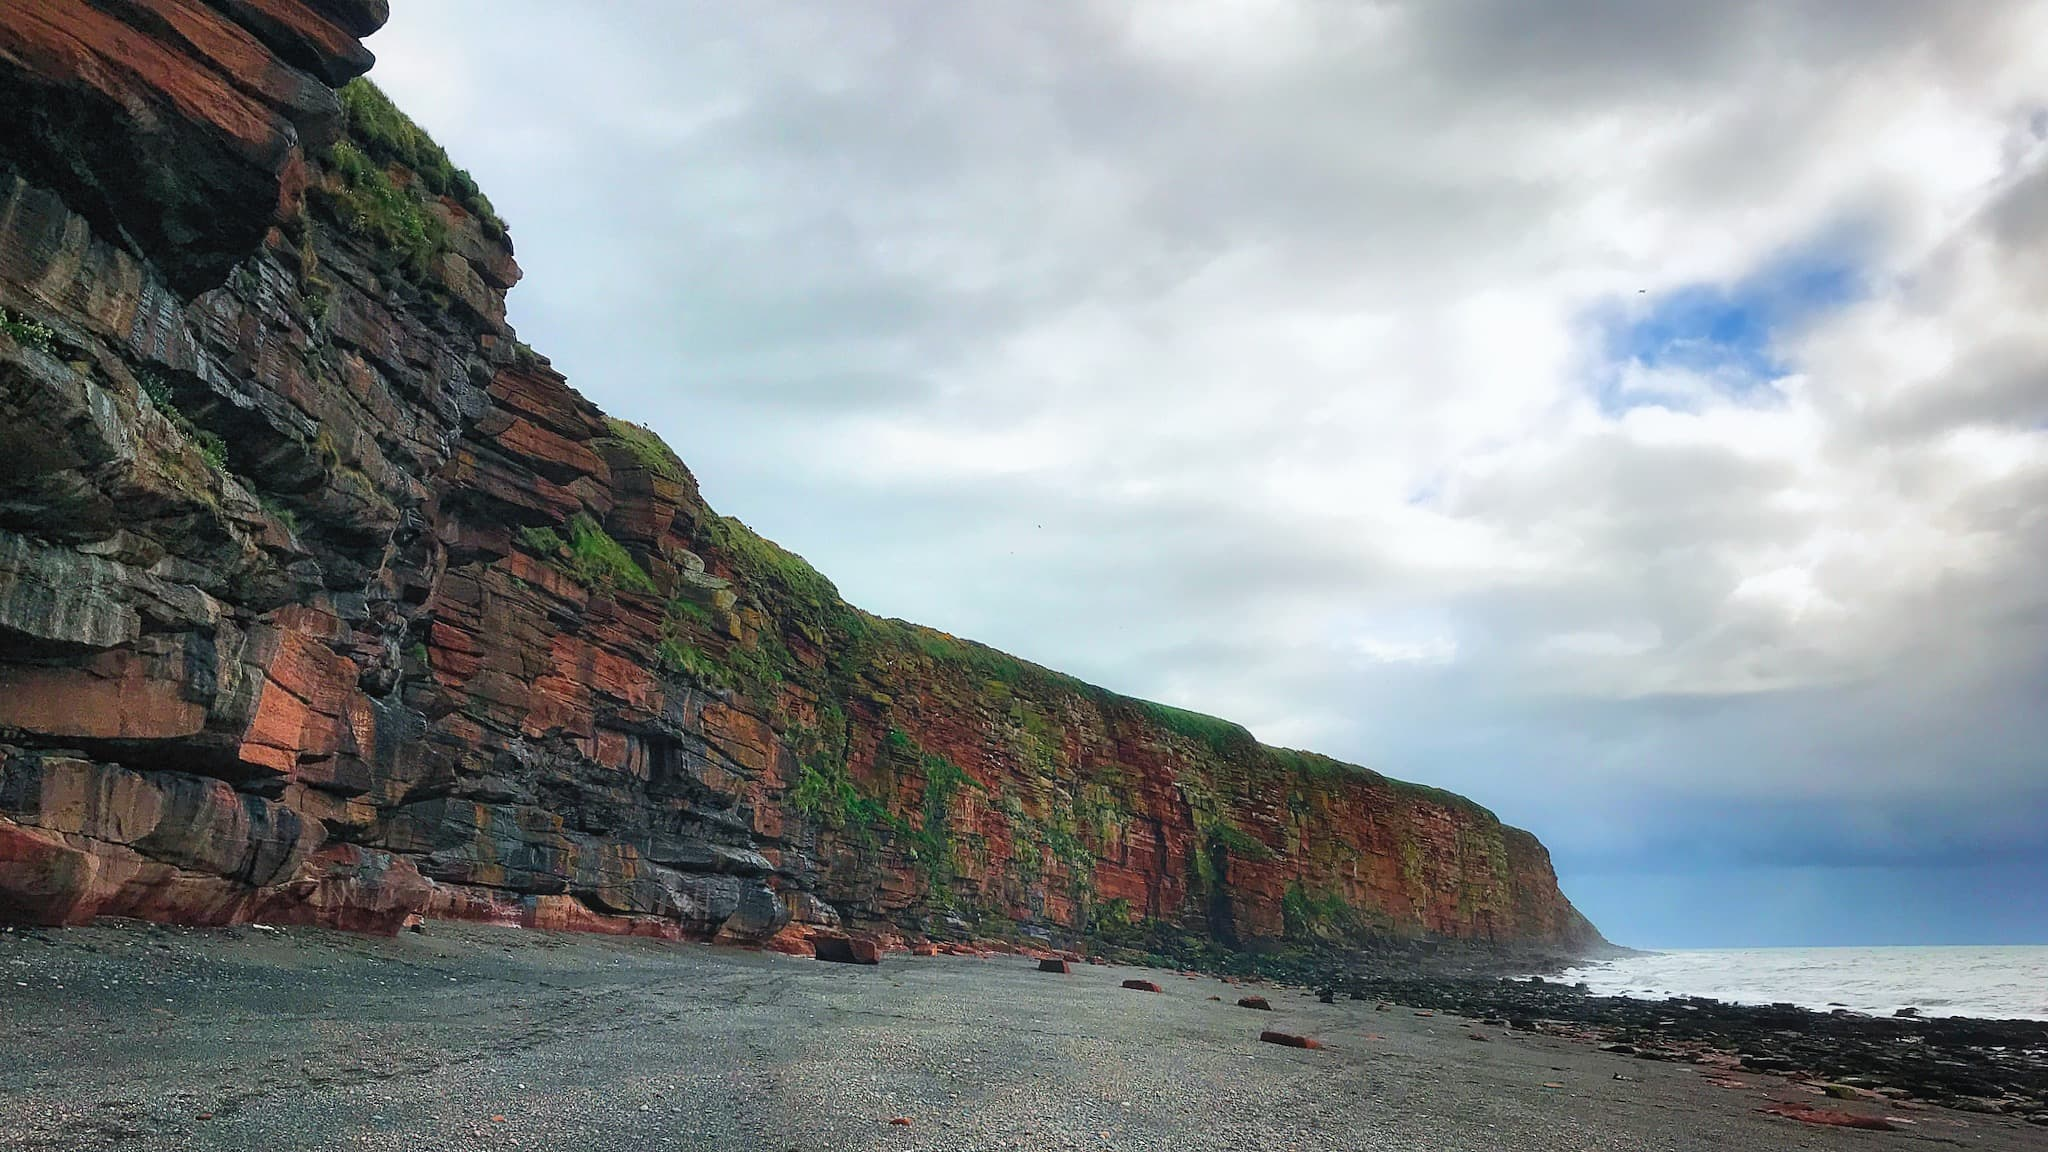 The cliffs of St. Bees head at Fleswick Bay on the Cumbrian Coast